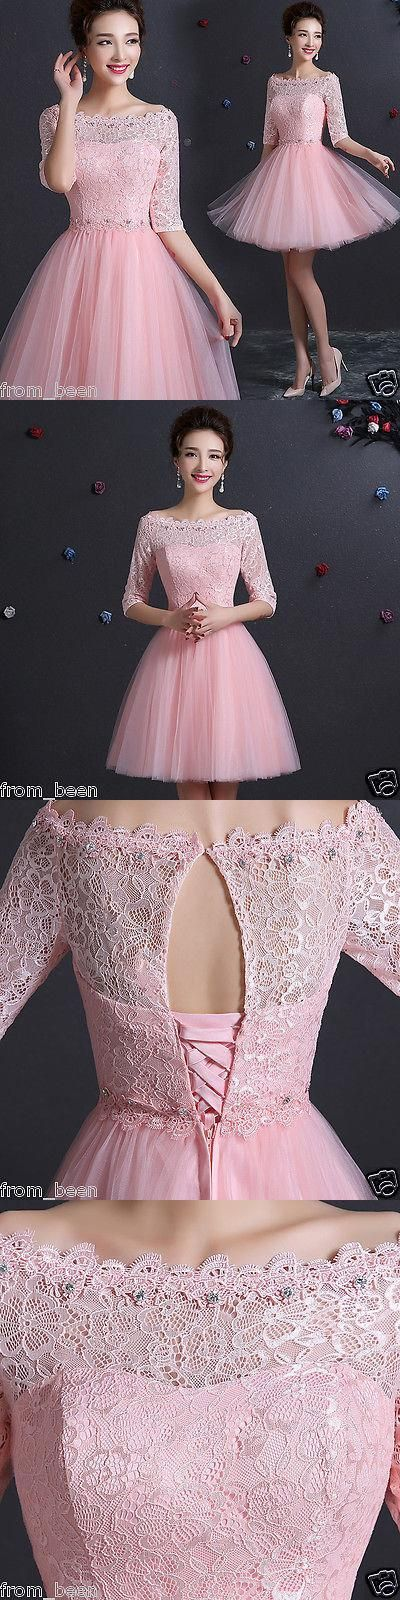 Lace Homecoming Dress with Pink Sleeve,Pink Homecoming Dress,Short Prom